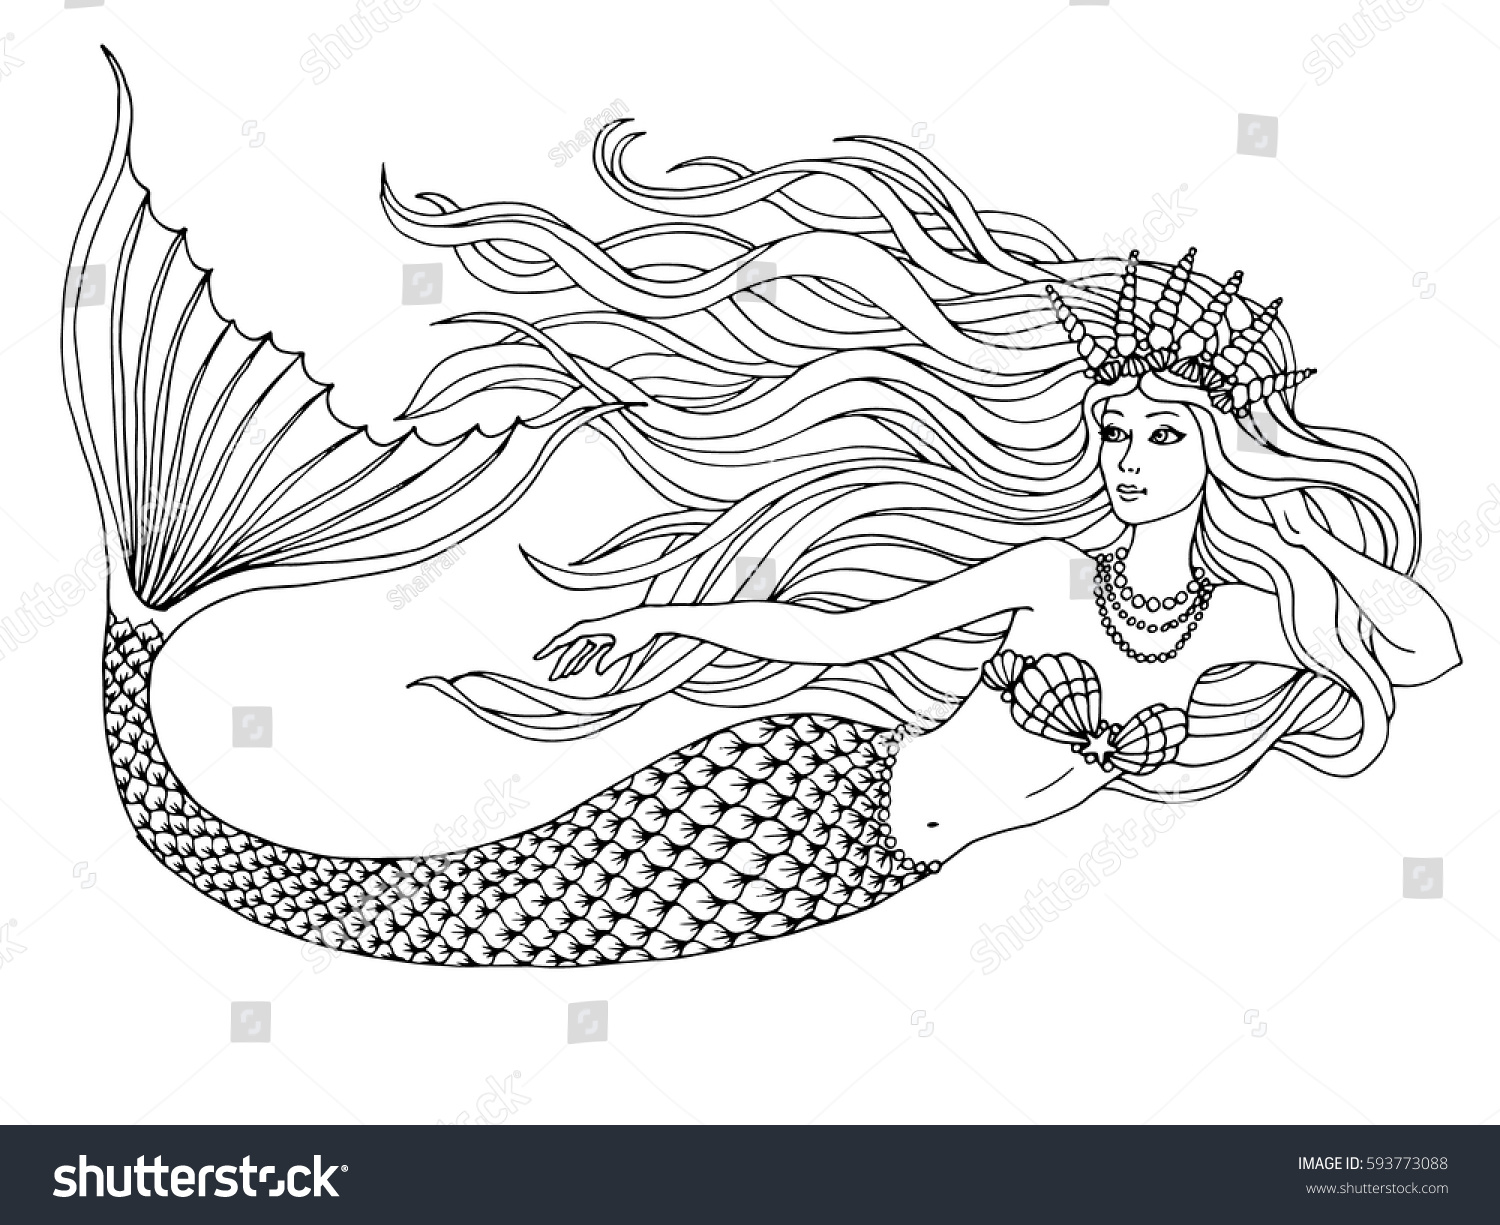 Hand painted mermaid watercolor vector silhouette stock vector - Mermaid Swimming Undersea Hand Drawn Linen Vector Illustration On A White Background For Coloring Book